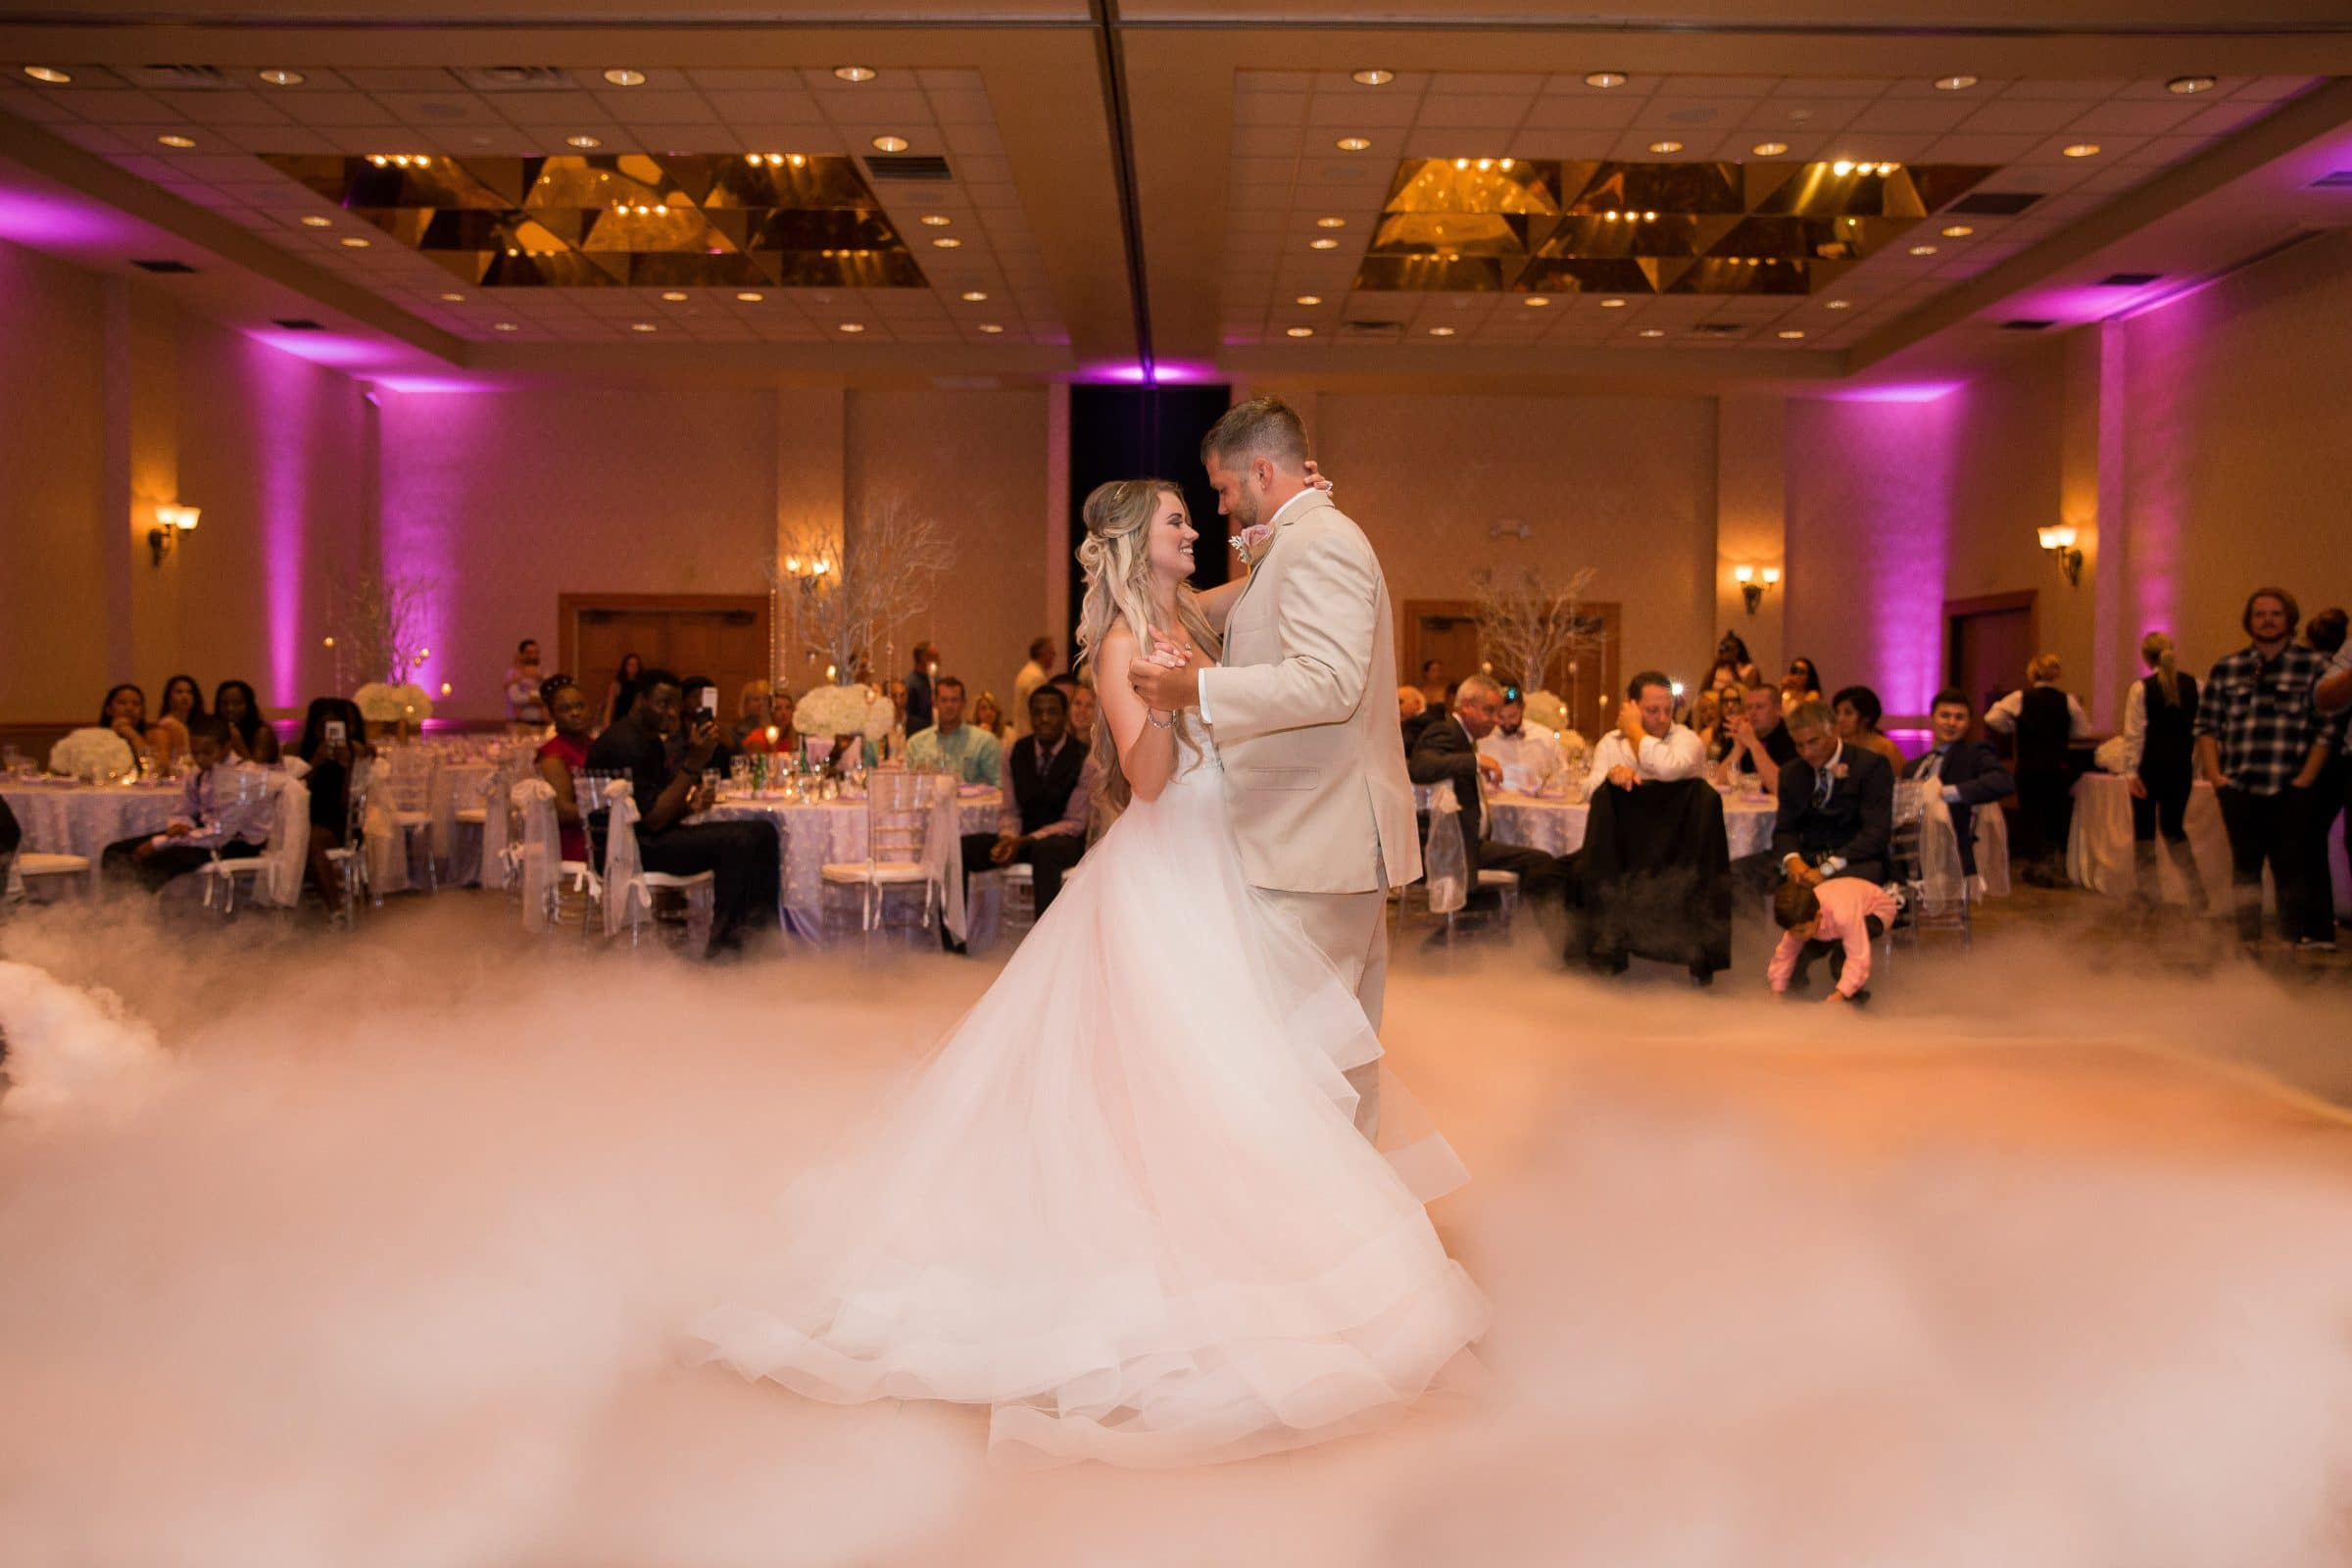 Bride and groom's first dance on a cloud at Mission Inn Wedding